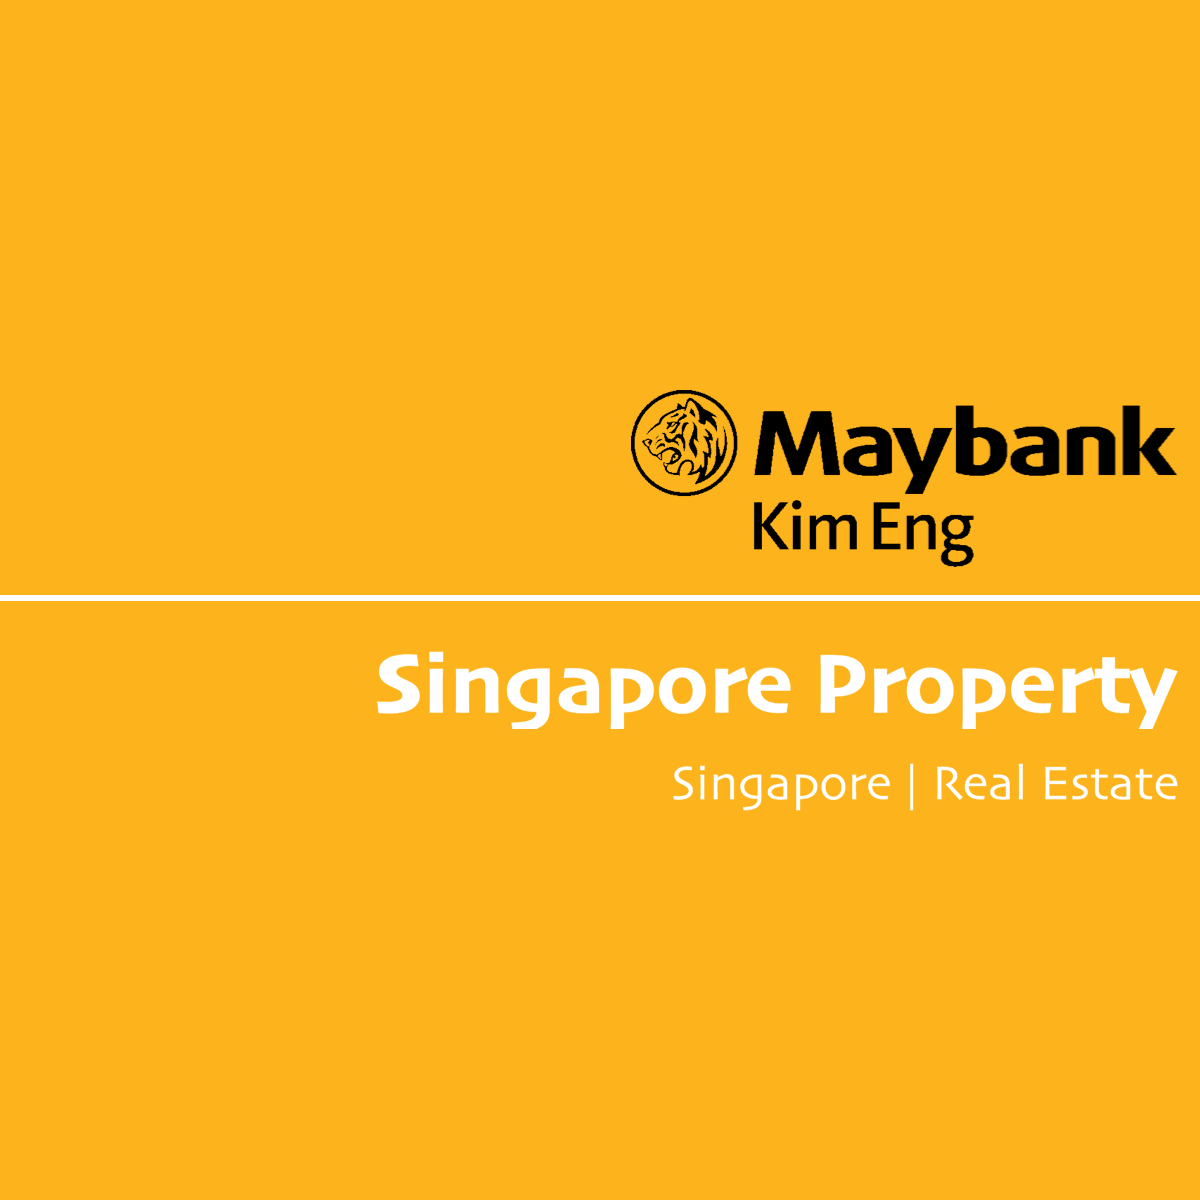 Singapore Property - Maybank Kim Eng Research 2018-07-06: Back To Tightening Mode ~  let The Dust Settle; Downgrade To Neutral